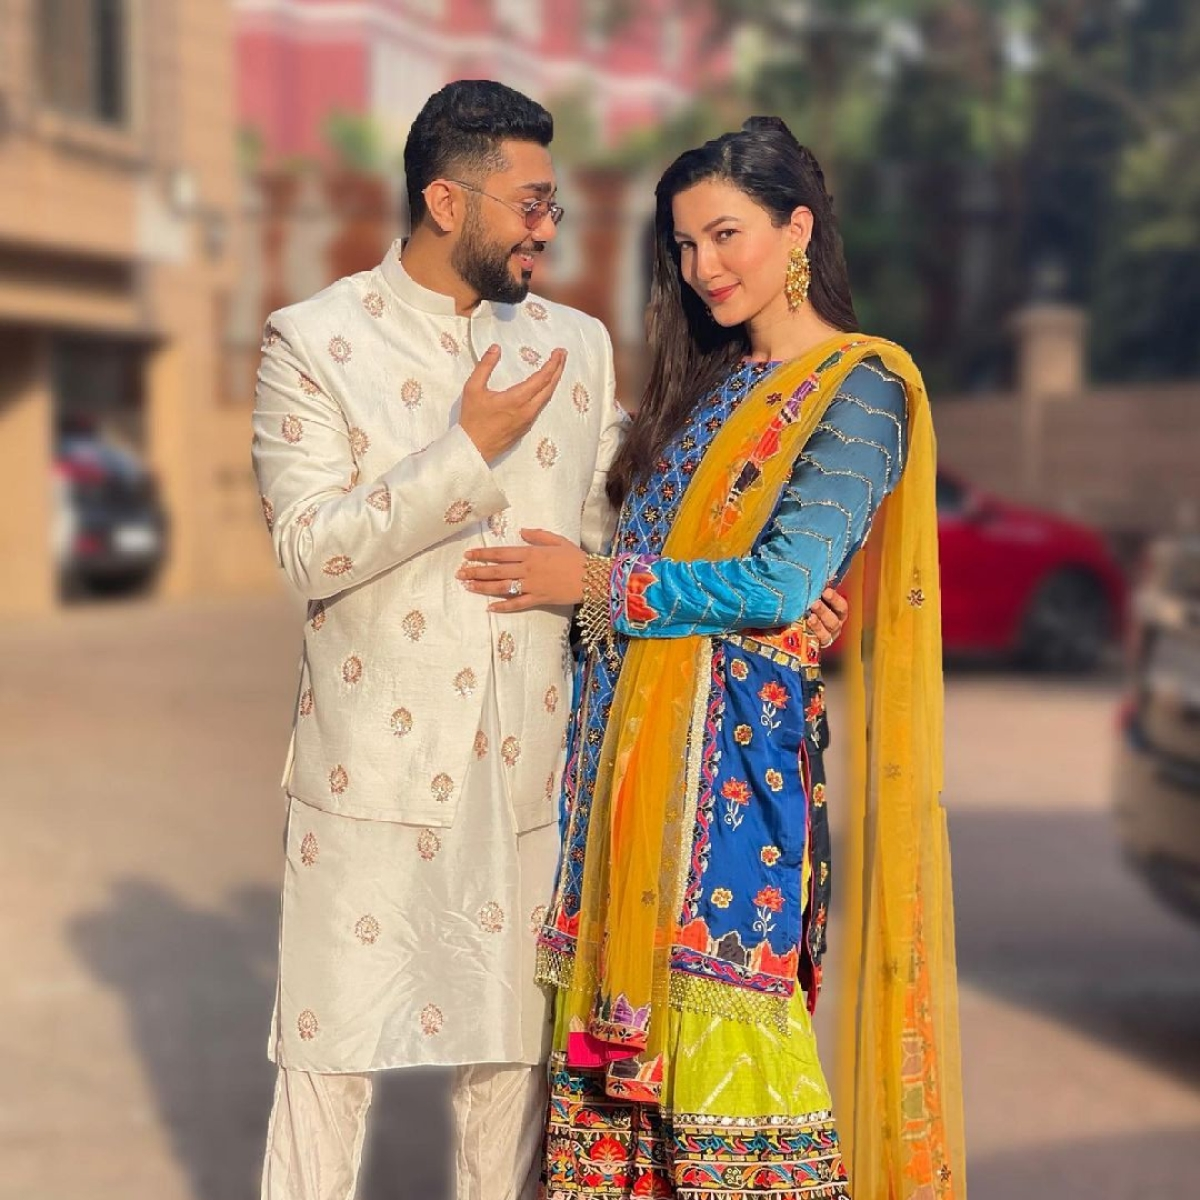 Gauahar Khan gives befitting reply to troll who said 'in Islam women are always at man's feet'